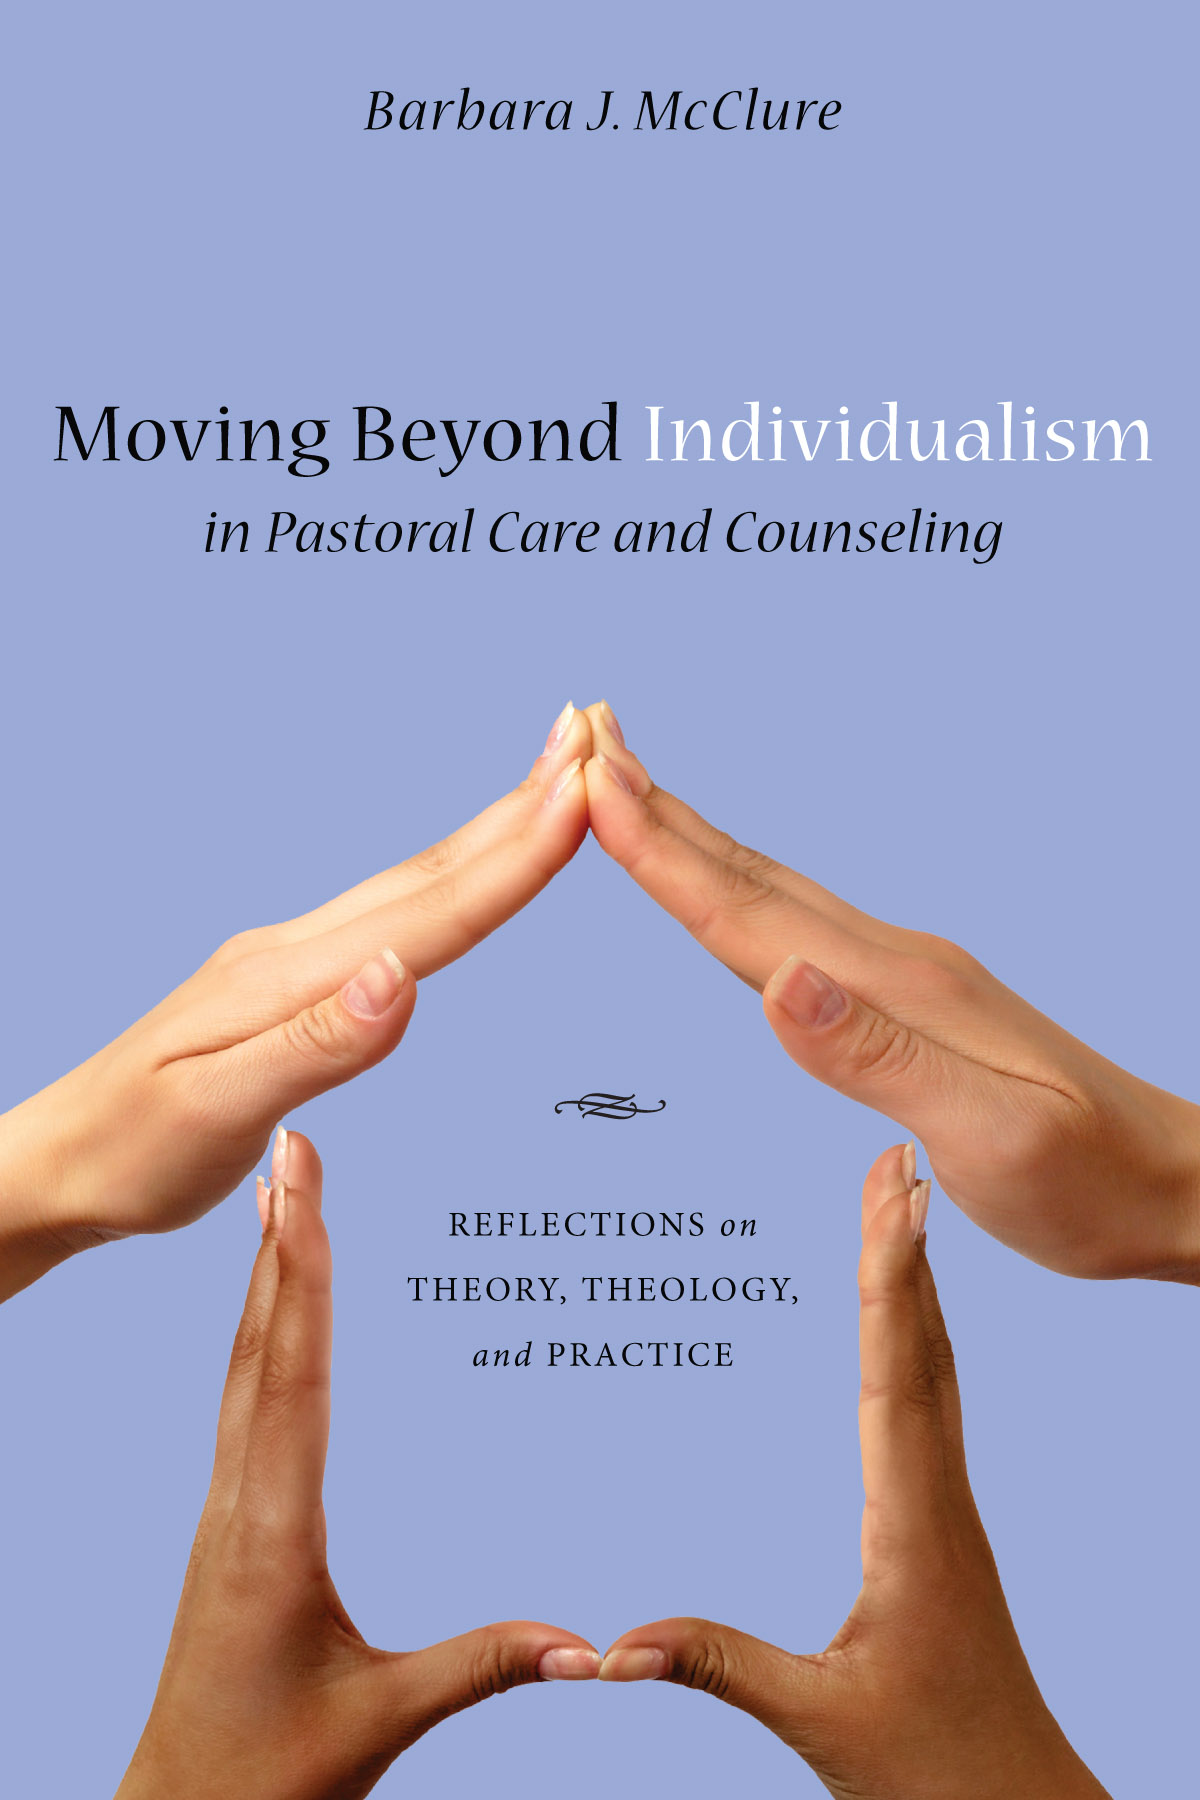 pastoral care counseling is your pastor There are many topics and issues that are taught in seminary after you accepted the call to be a pastor these topics range from homiletics (the art of the preparation and delivery of a sermon), to counseling, and even pastoral ethics but many pastors struggle most with knowing how to care for the.